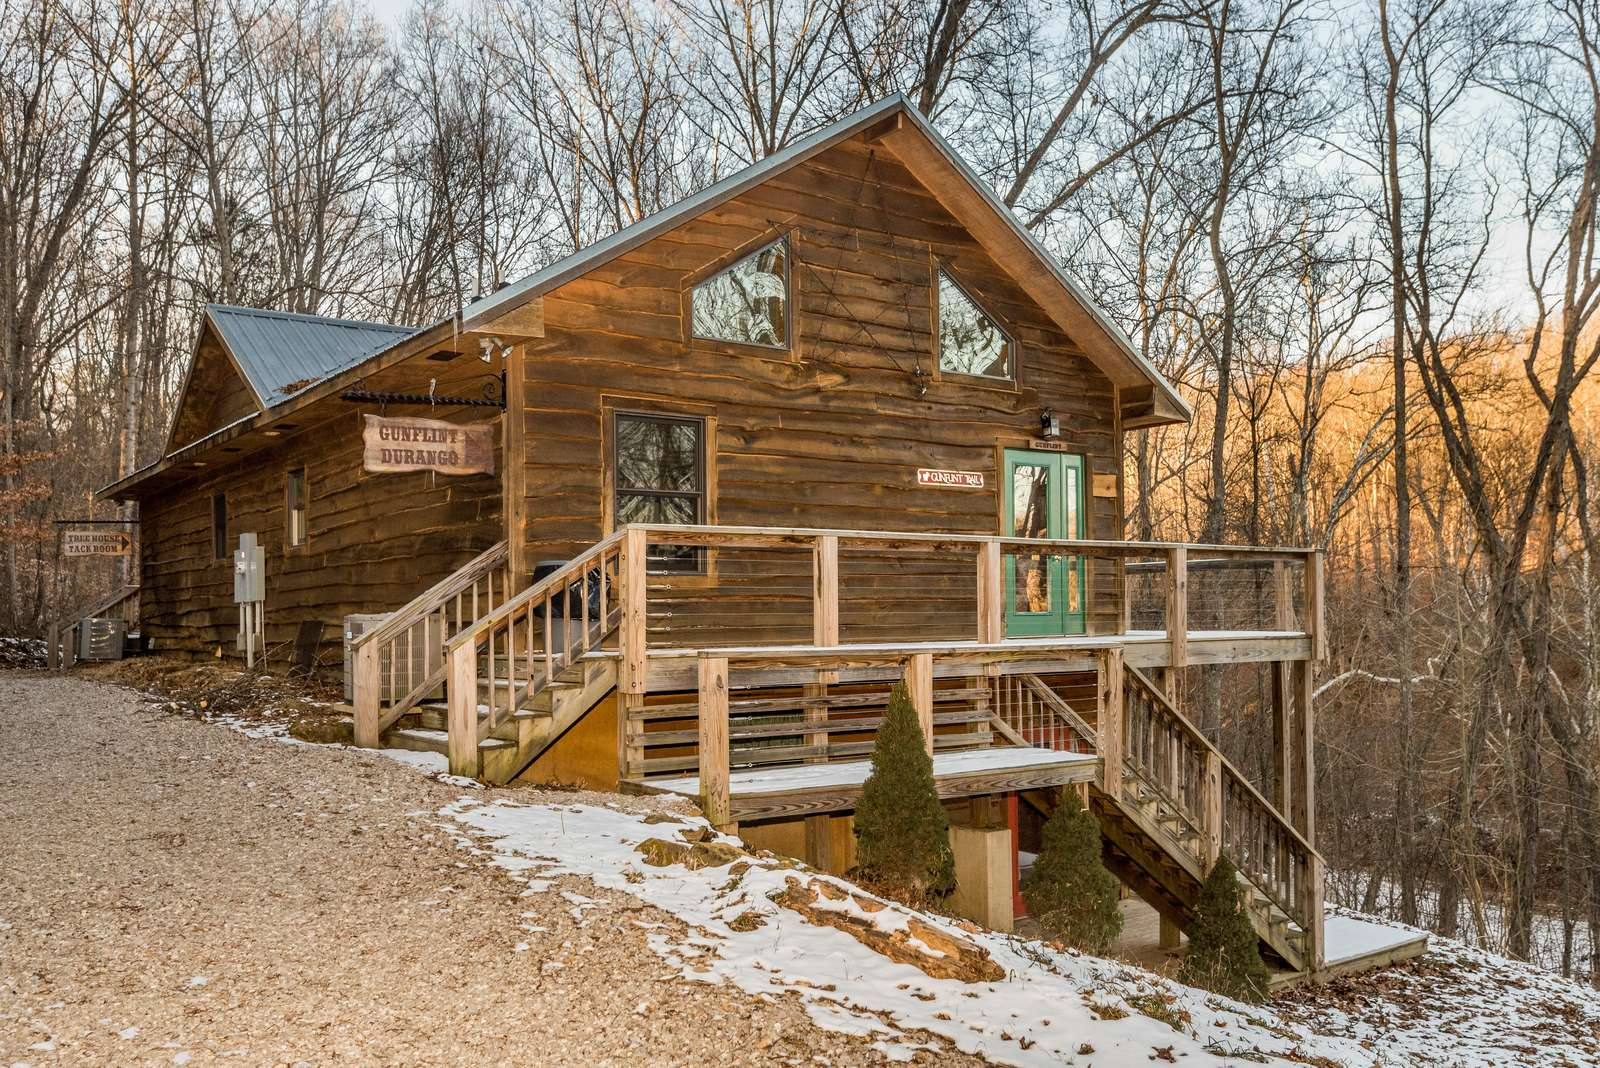 Brown County Tree House - property